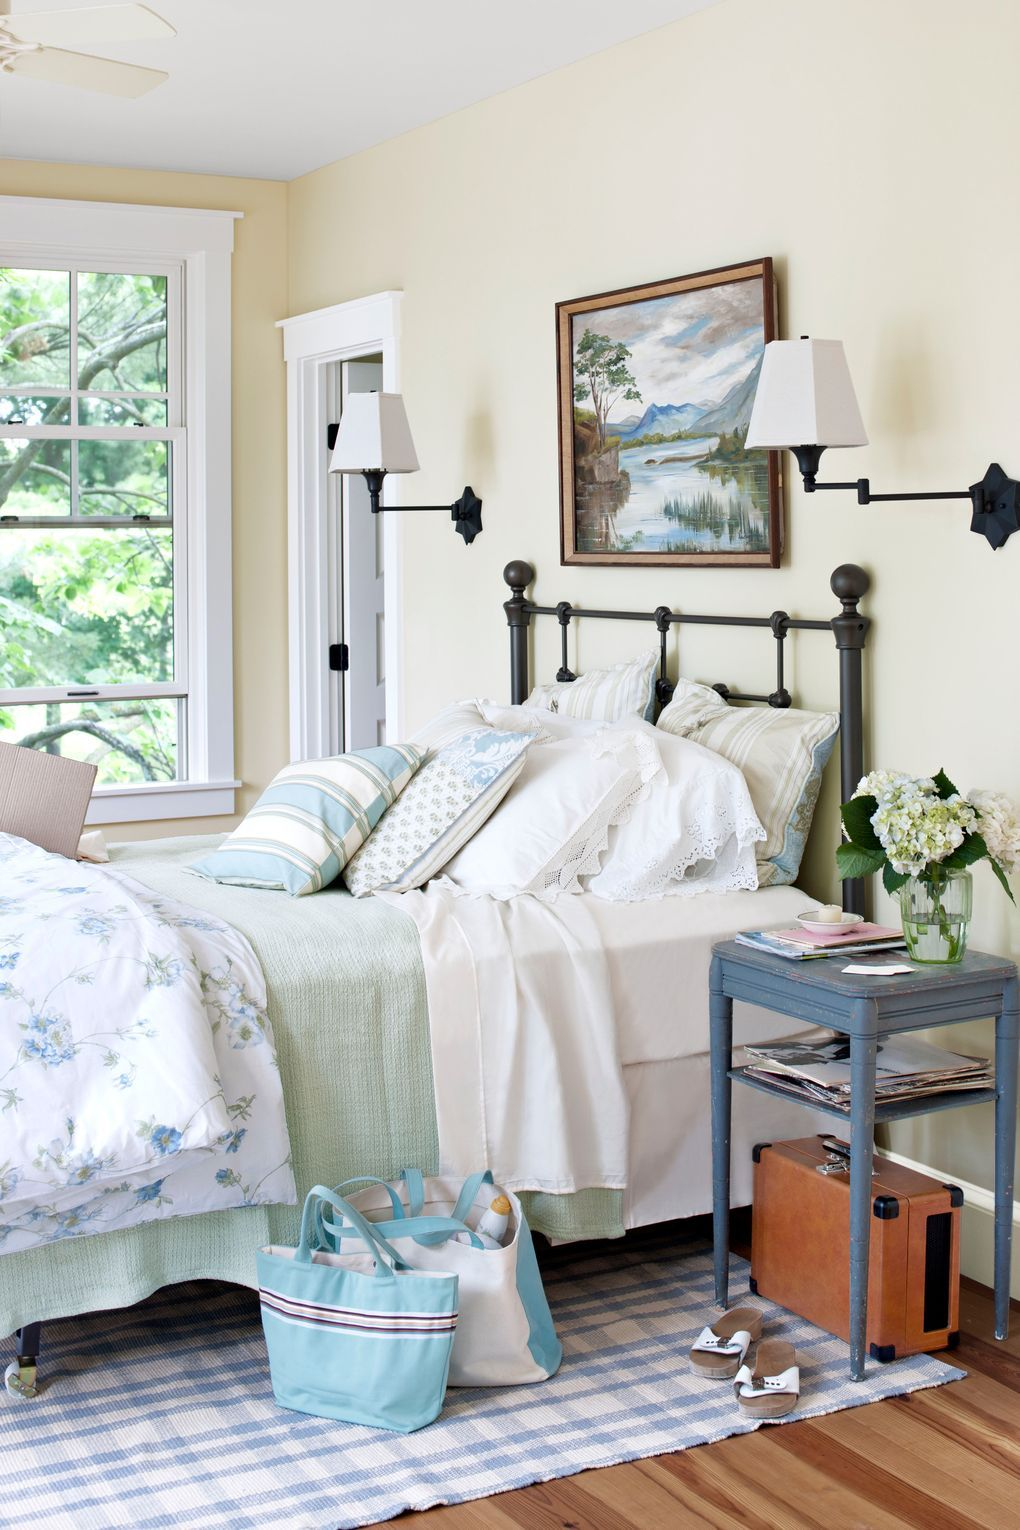 This Cozy Bedroom Decor Will Make You Want To Stay In Bed All Day In 2020 Bedroom Decor Cozy Country Bedroom Design Modern Country Bedrooms